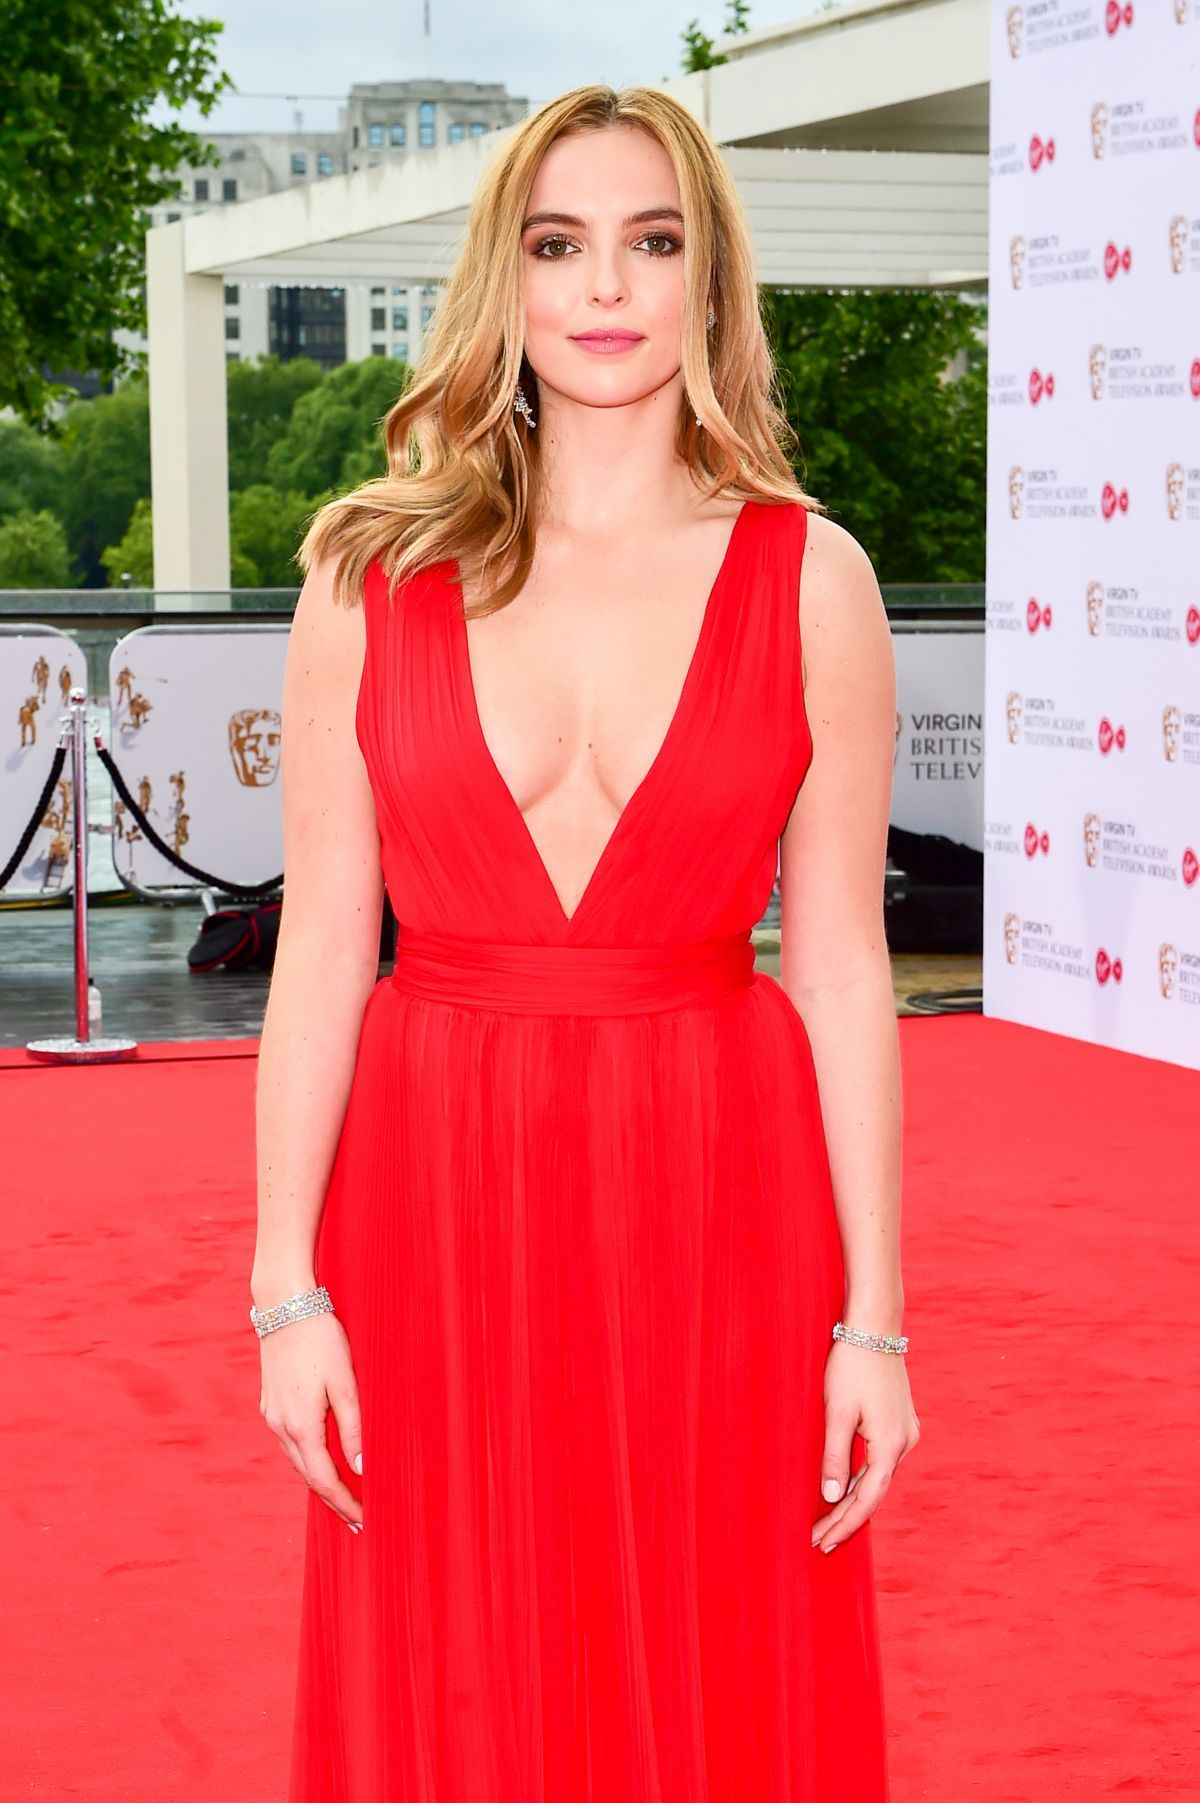 Leaked Jodie Comer naked (53 photos), Topless, Paparazzi, Feet, underwear 2015